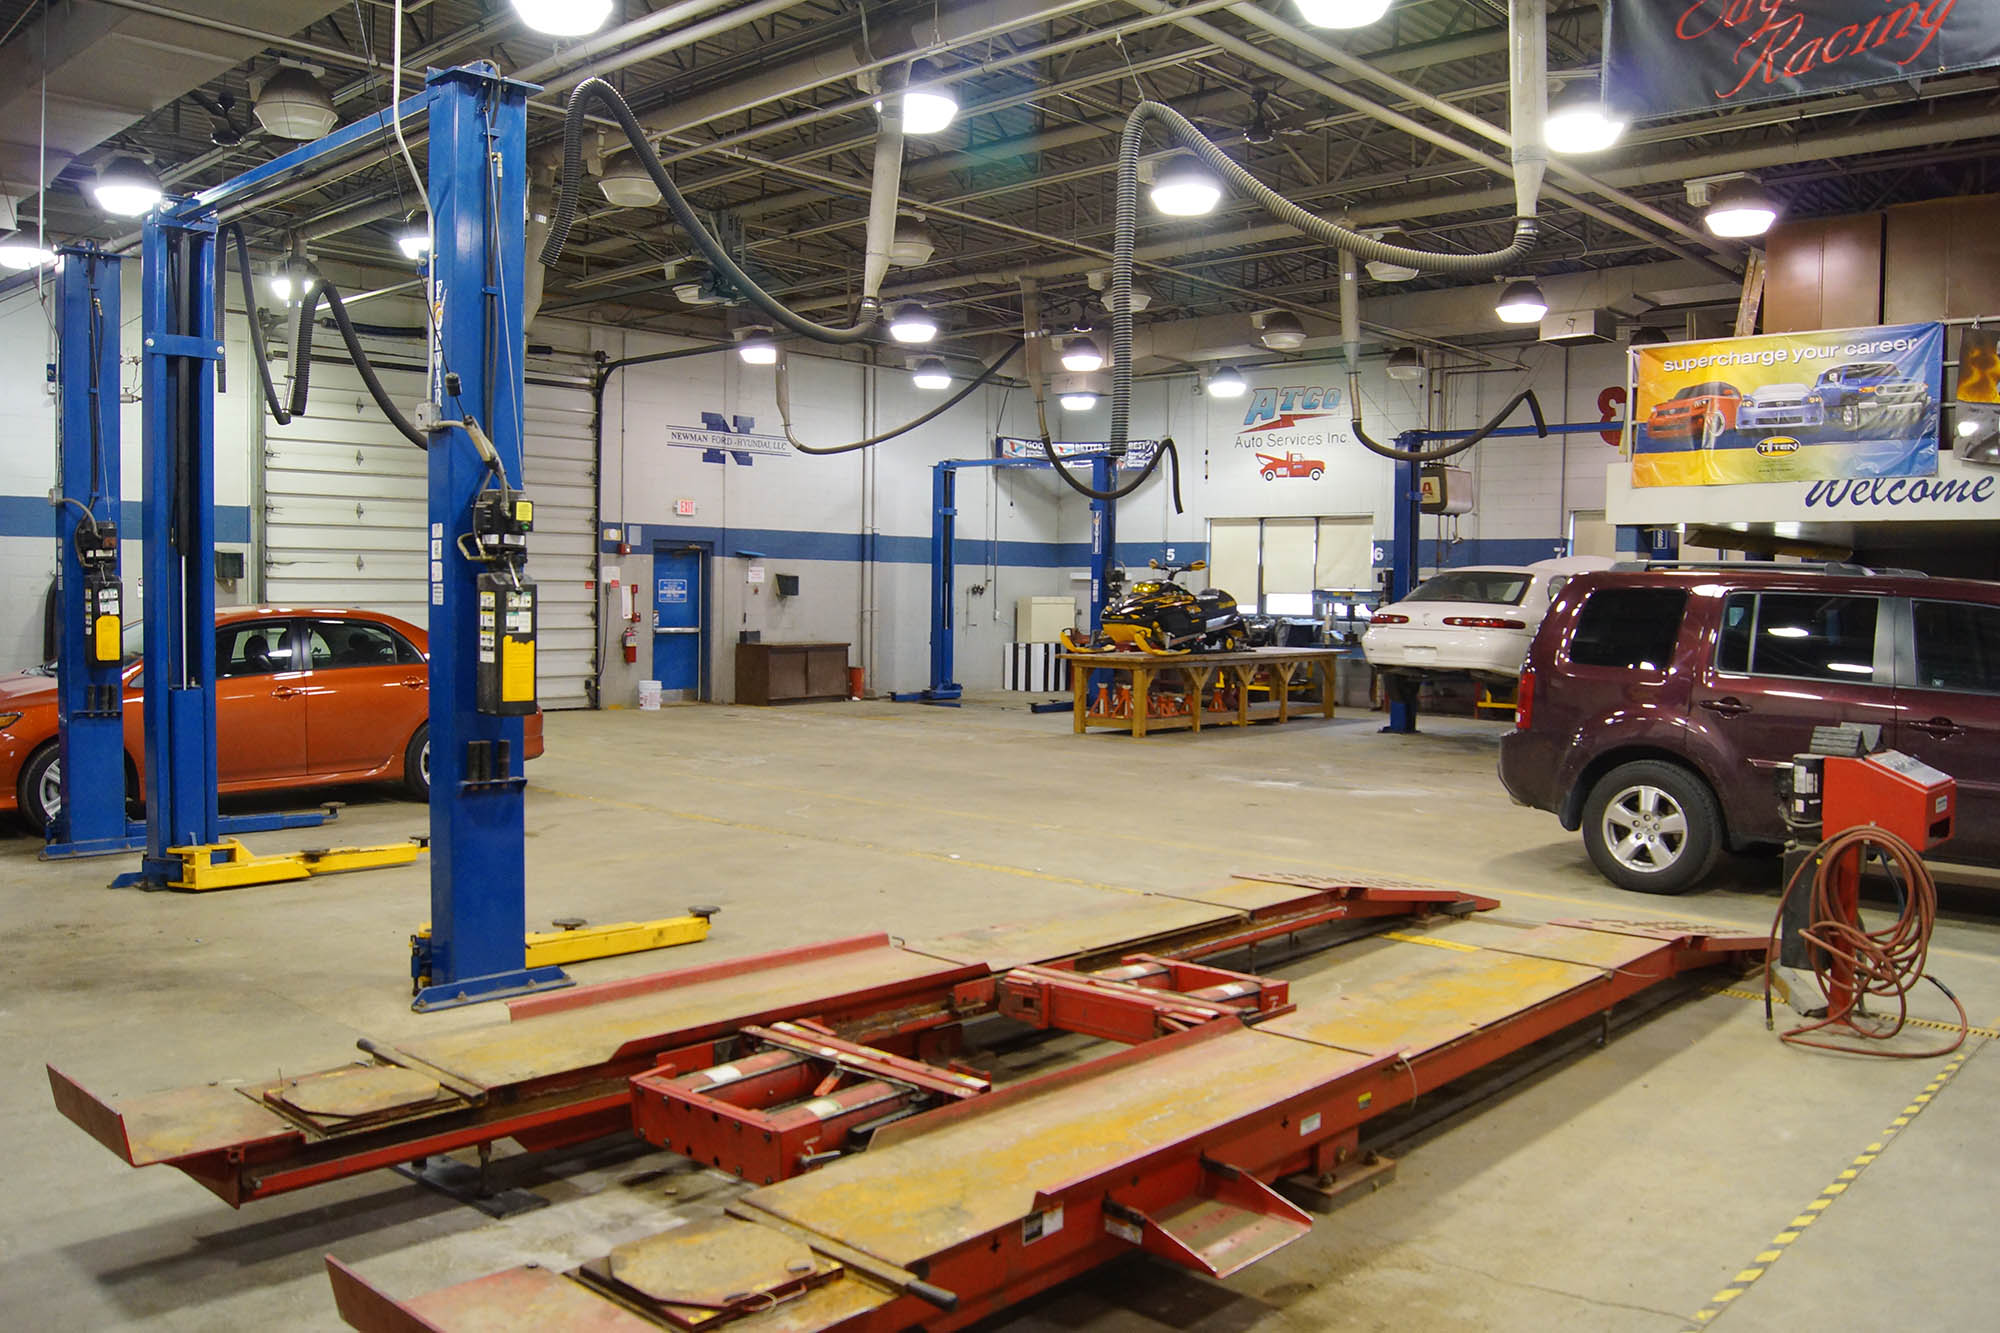 Auto Repair Shop Wallpapers High Quality | Download Free